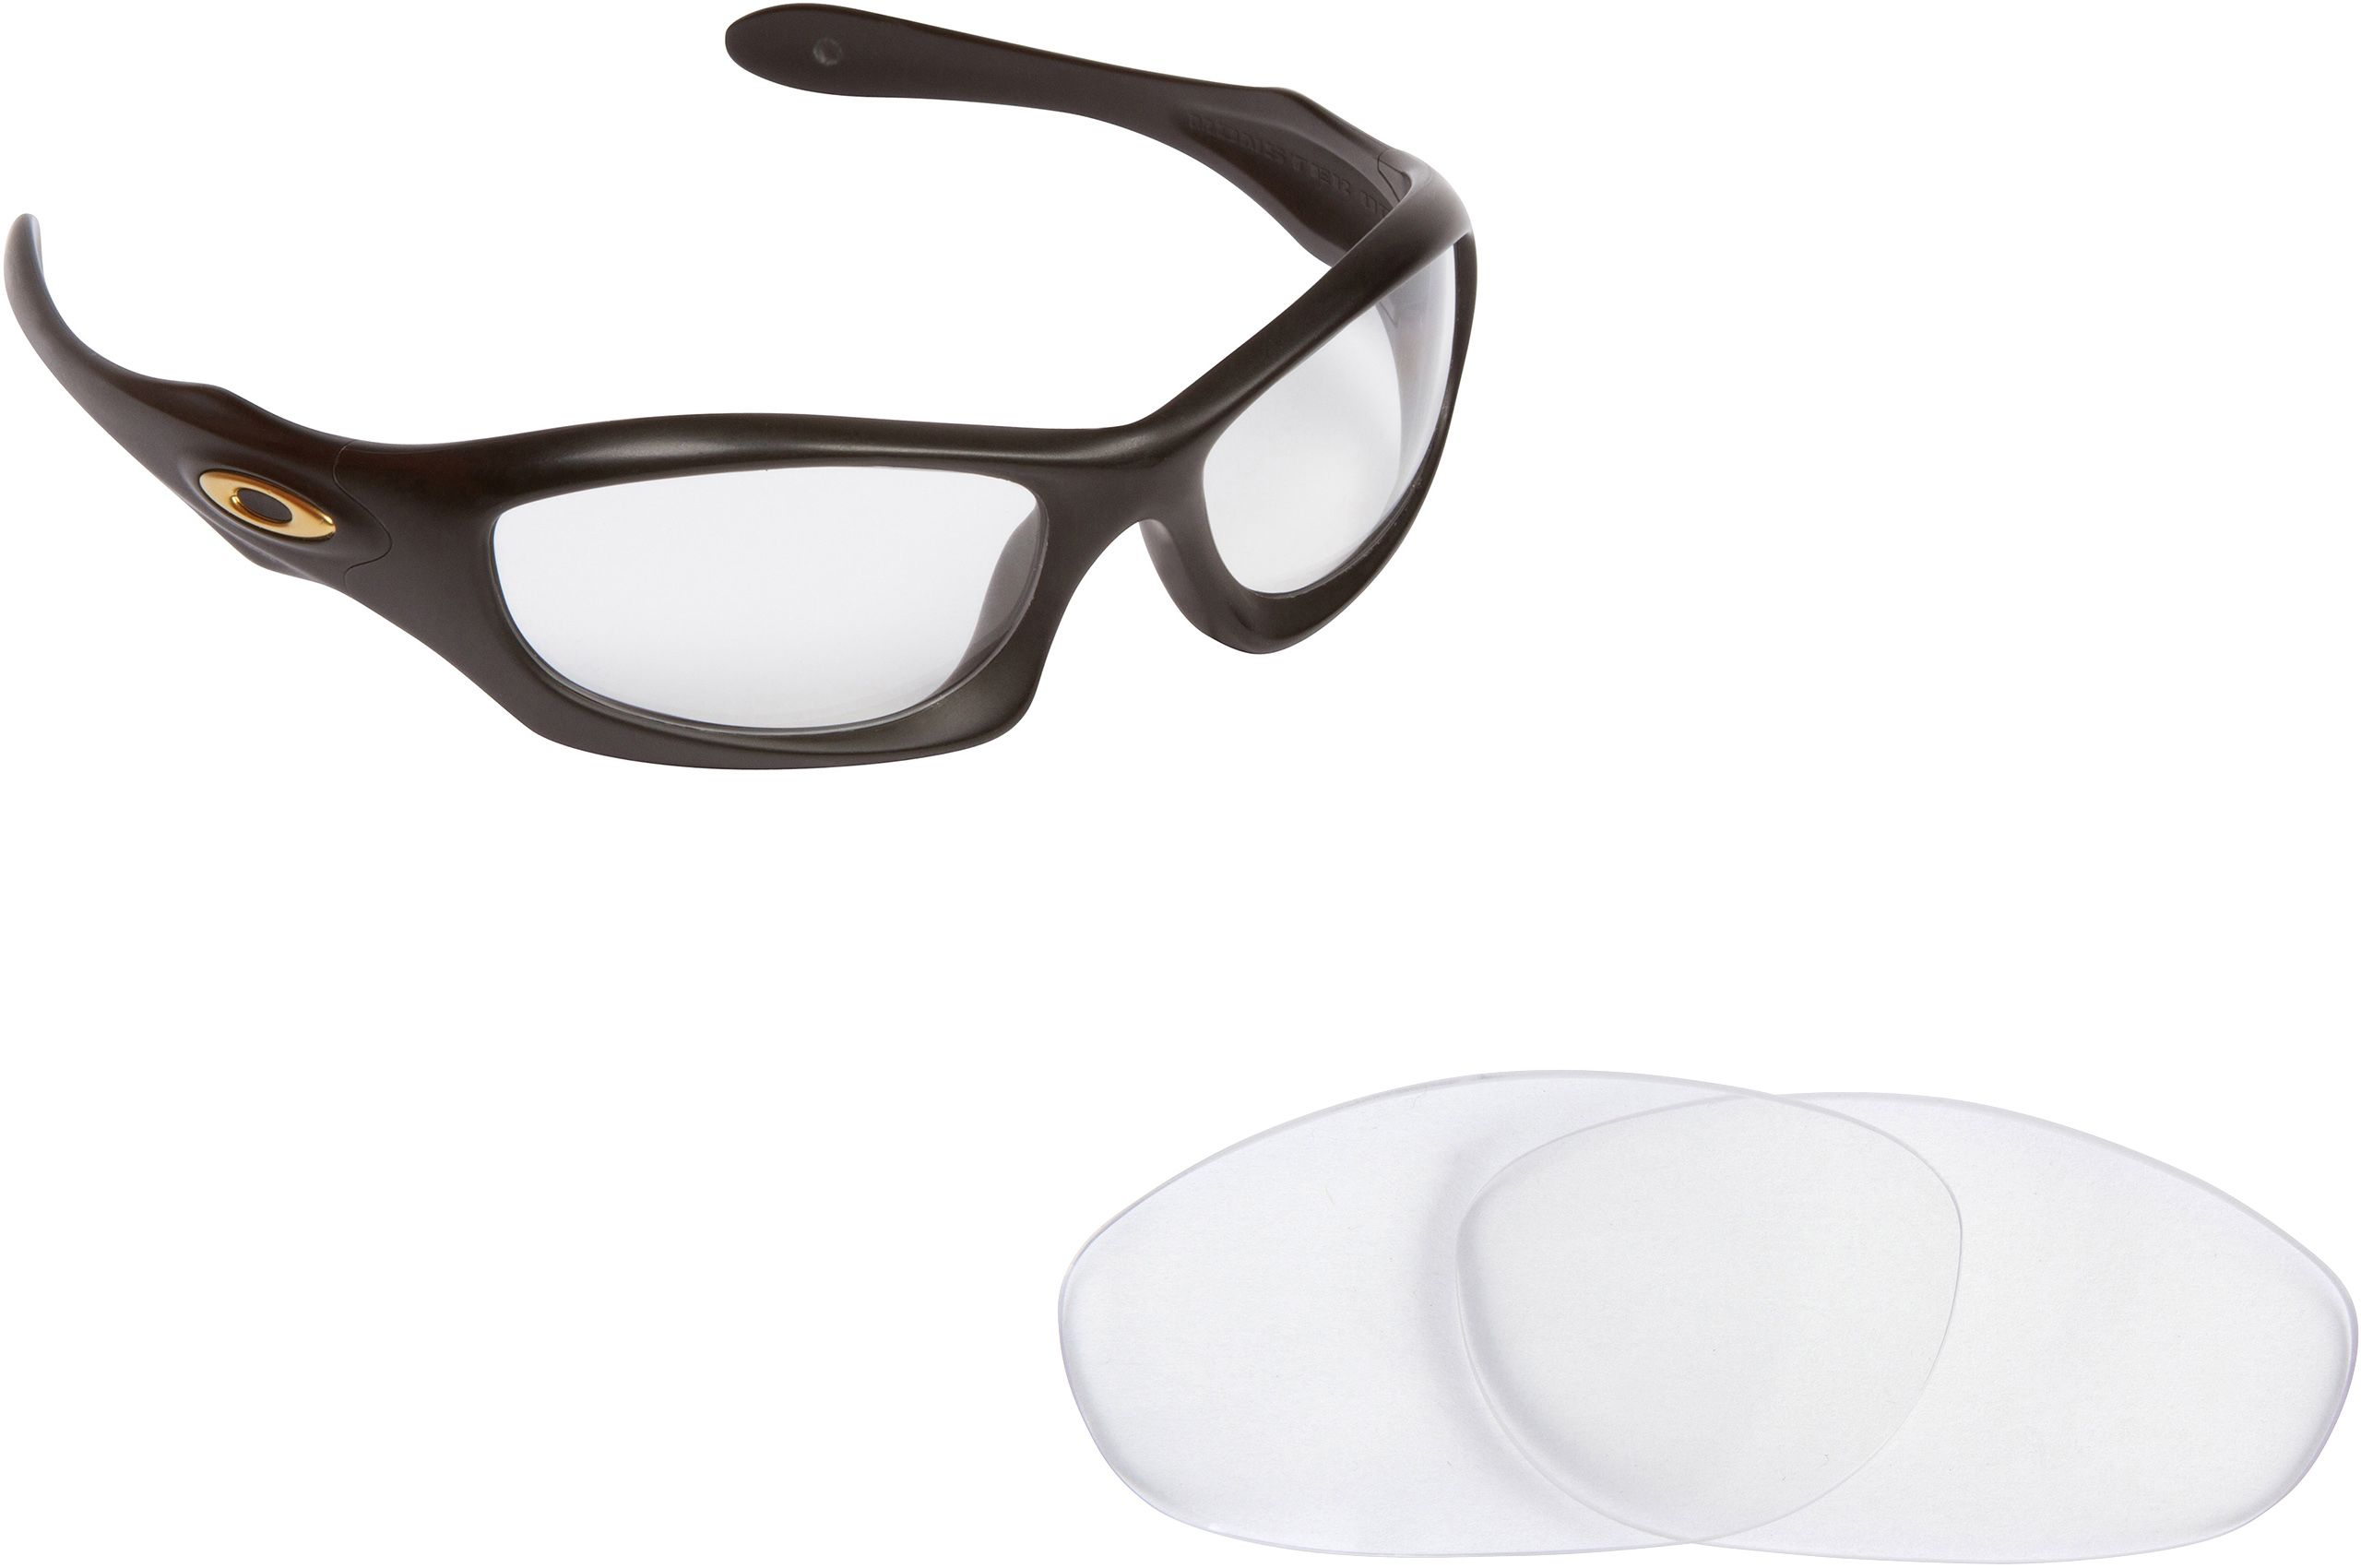 c0968f3c9d54a New SEEK Replacement Lenses for Oakley Sunglasses MONSTER DOG Crystal Clear  SALE